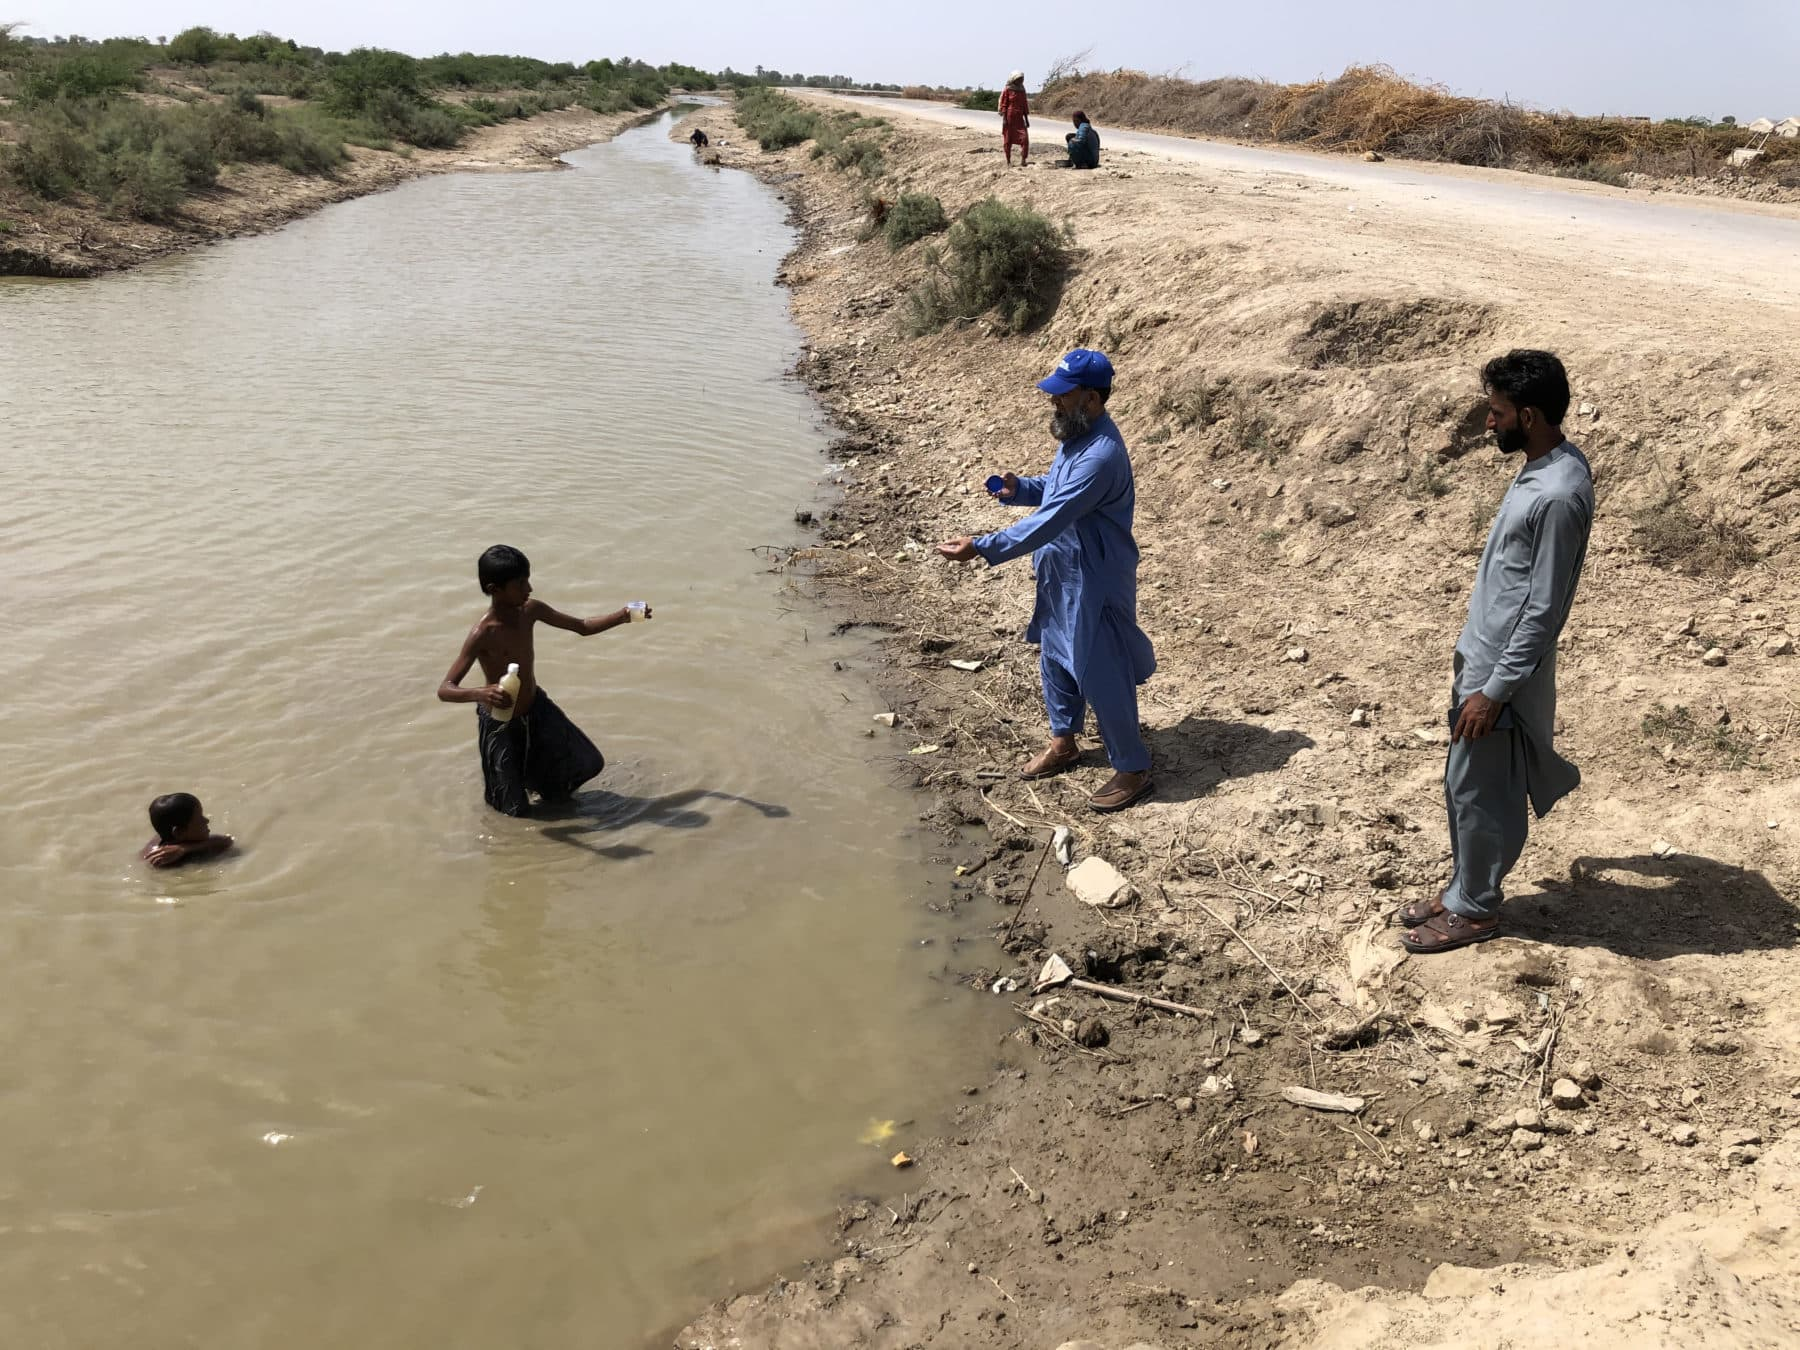 A young volunteer gets a water sample from the canal near the village of Ahmed Raju in Badin district. — Photo by Zofeen Ebrahim